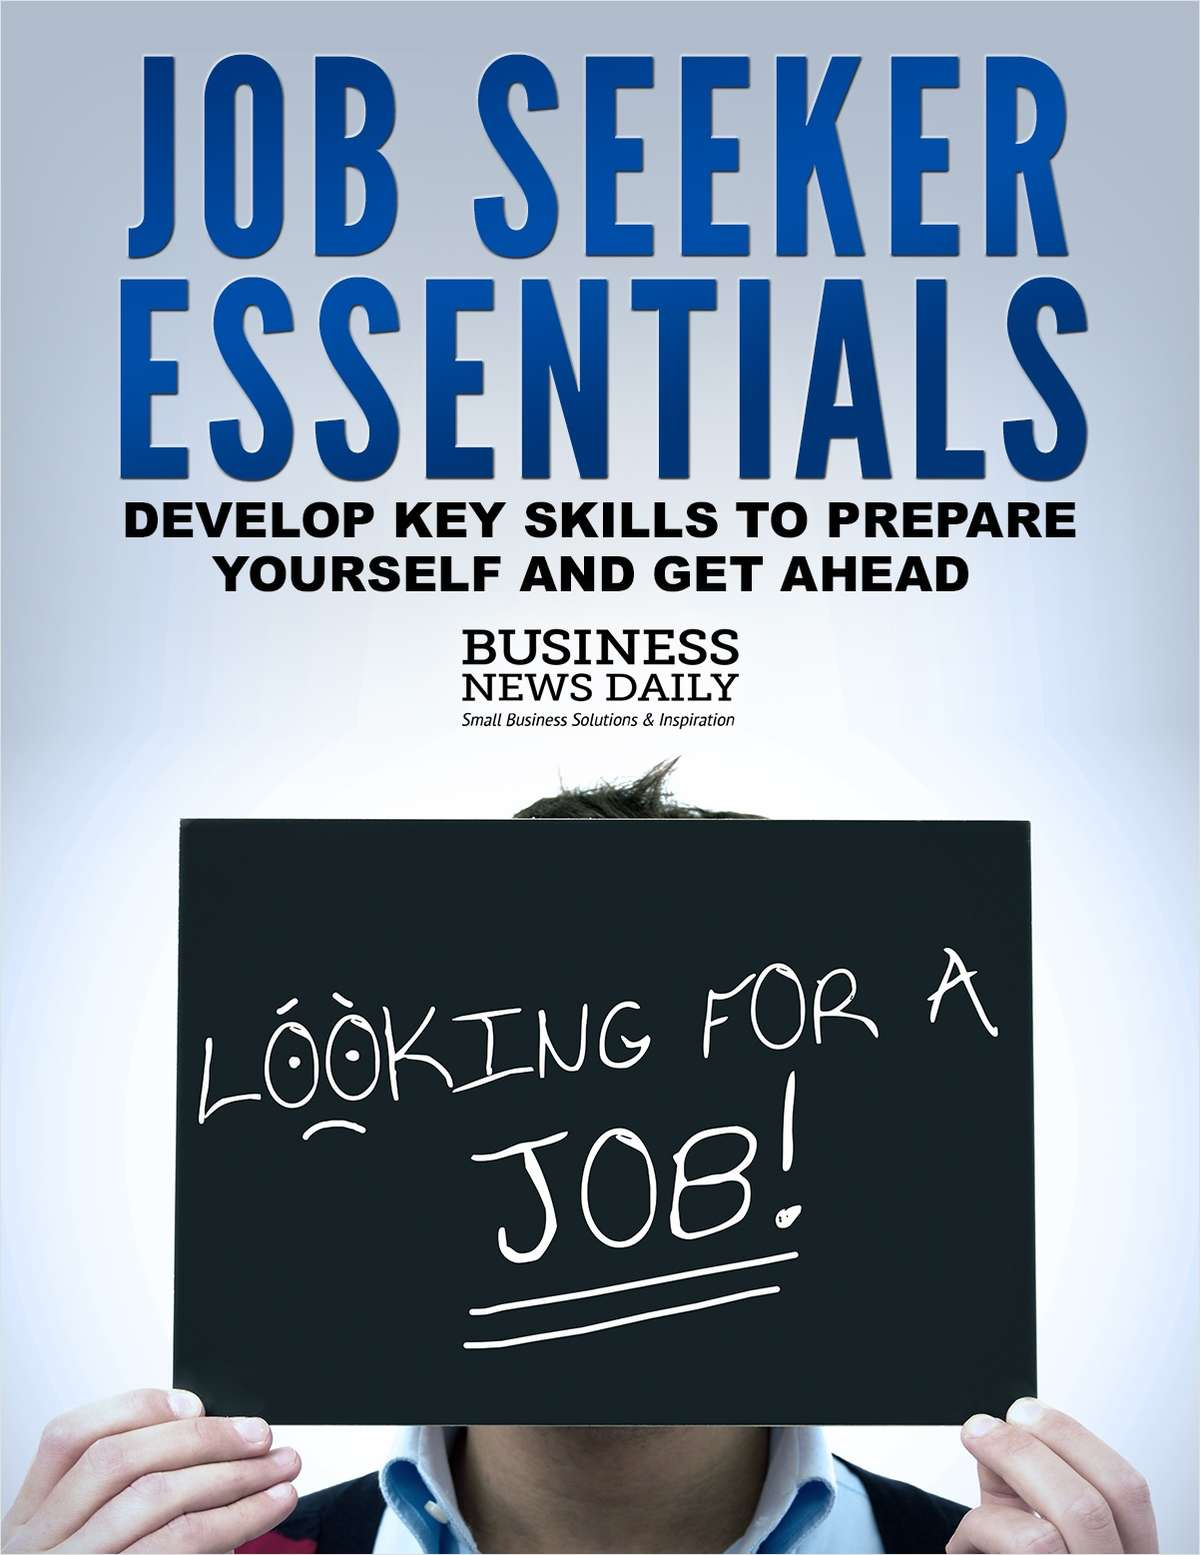 Job Seeker Essentials - Develop Key Skills to Prepare Yourself and Get Ahead